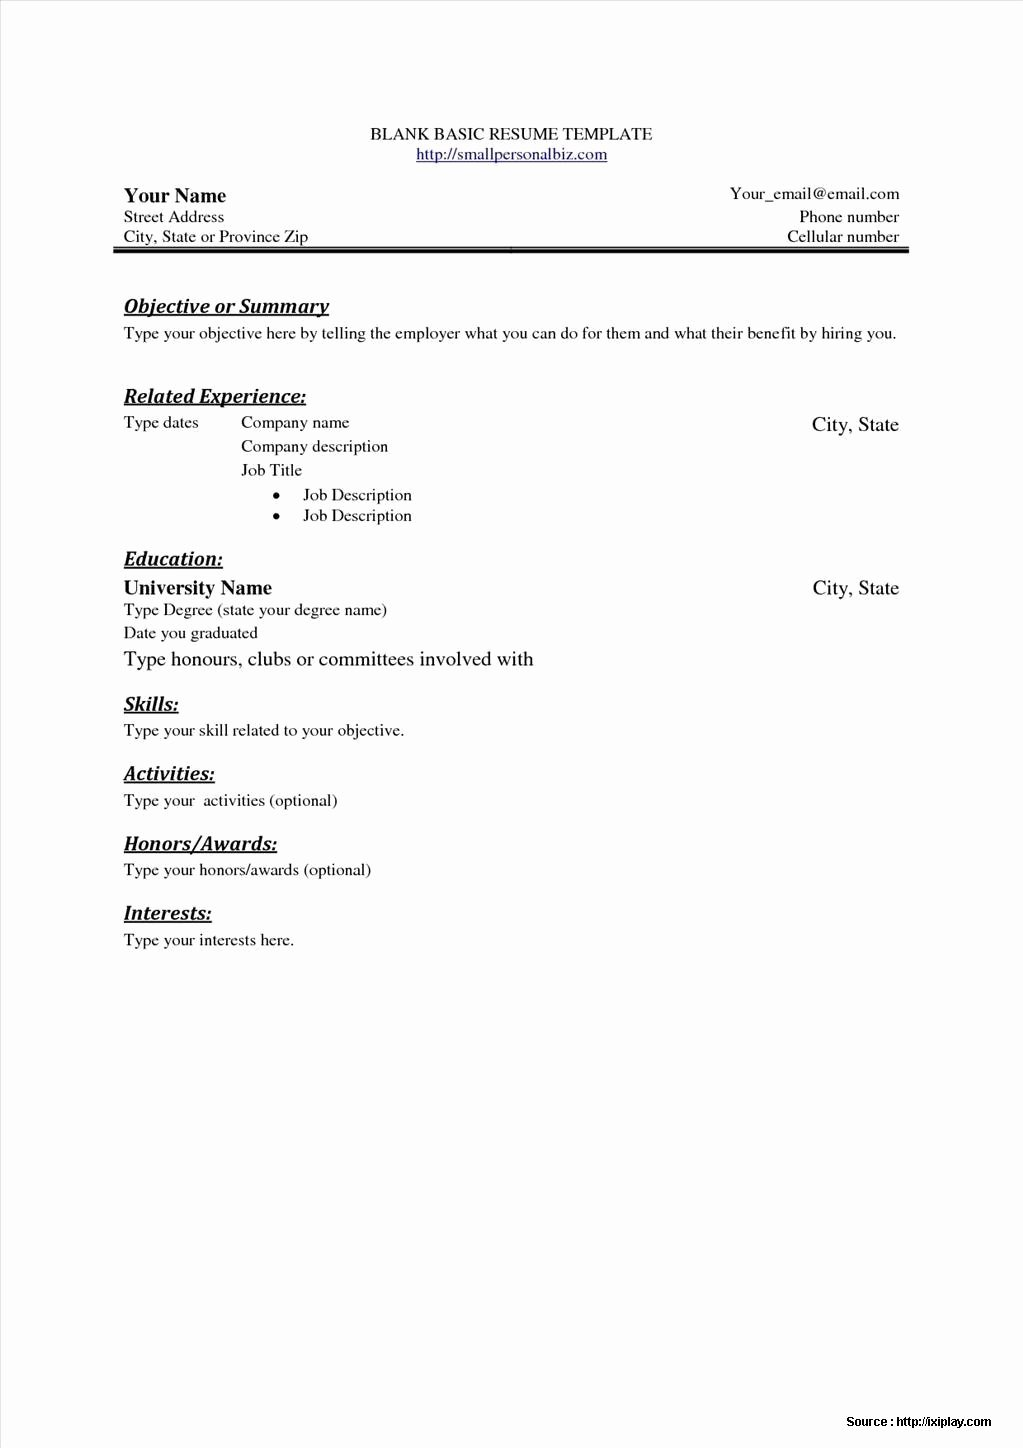 Free Resume Templates for Word Starter 2010 Resume